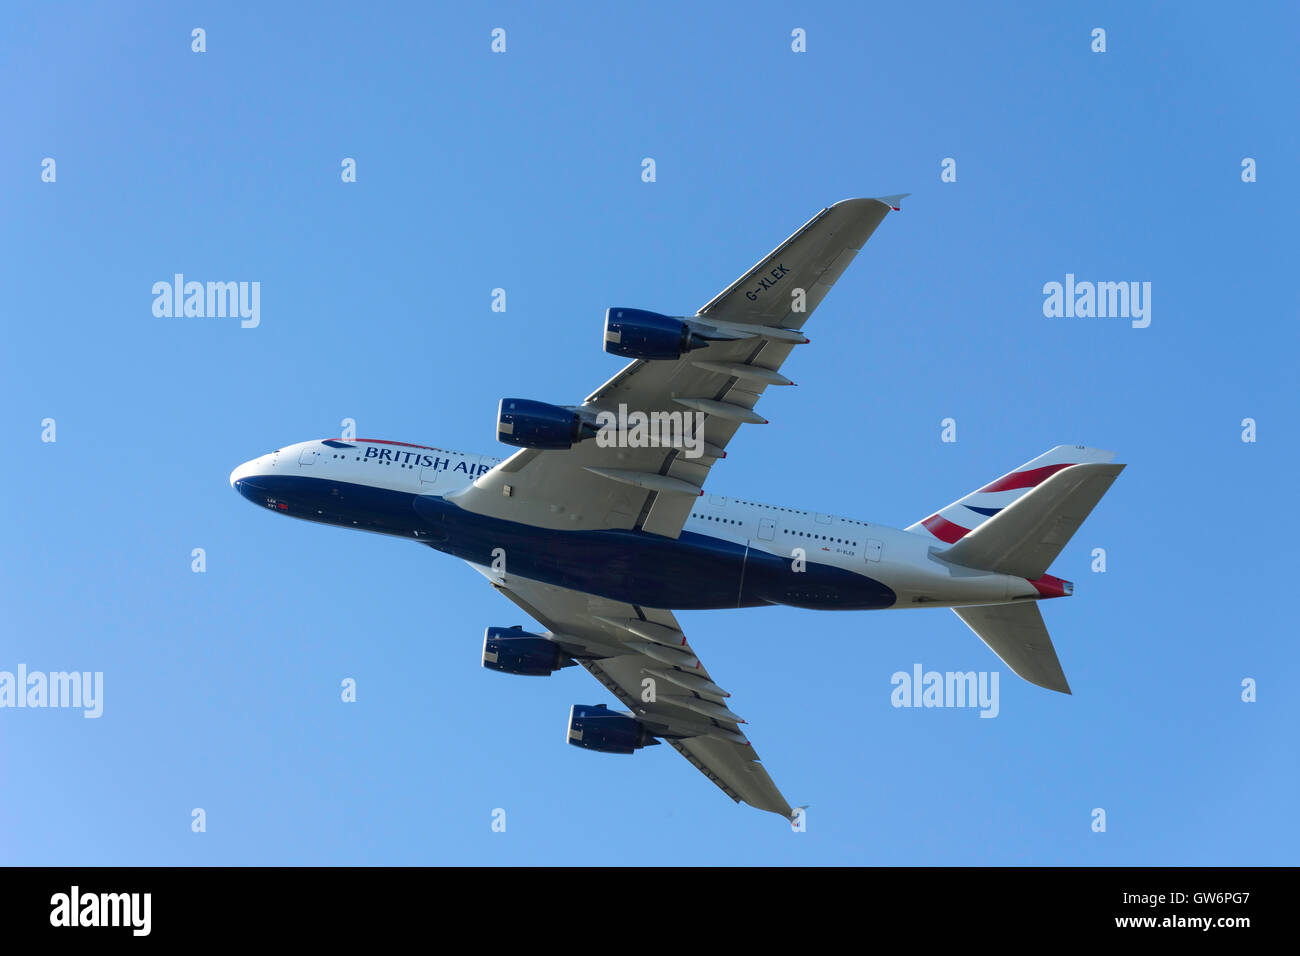 British Airways Airbus A380 aircraft taking off from Heathrow Airport, Greater London, England, United Kingdom - Stock Image